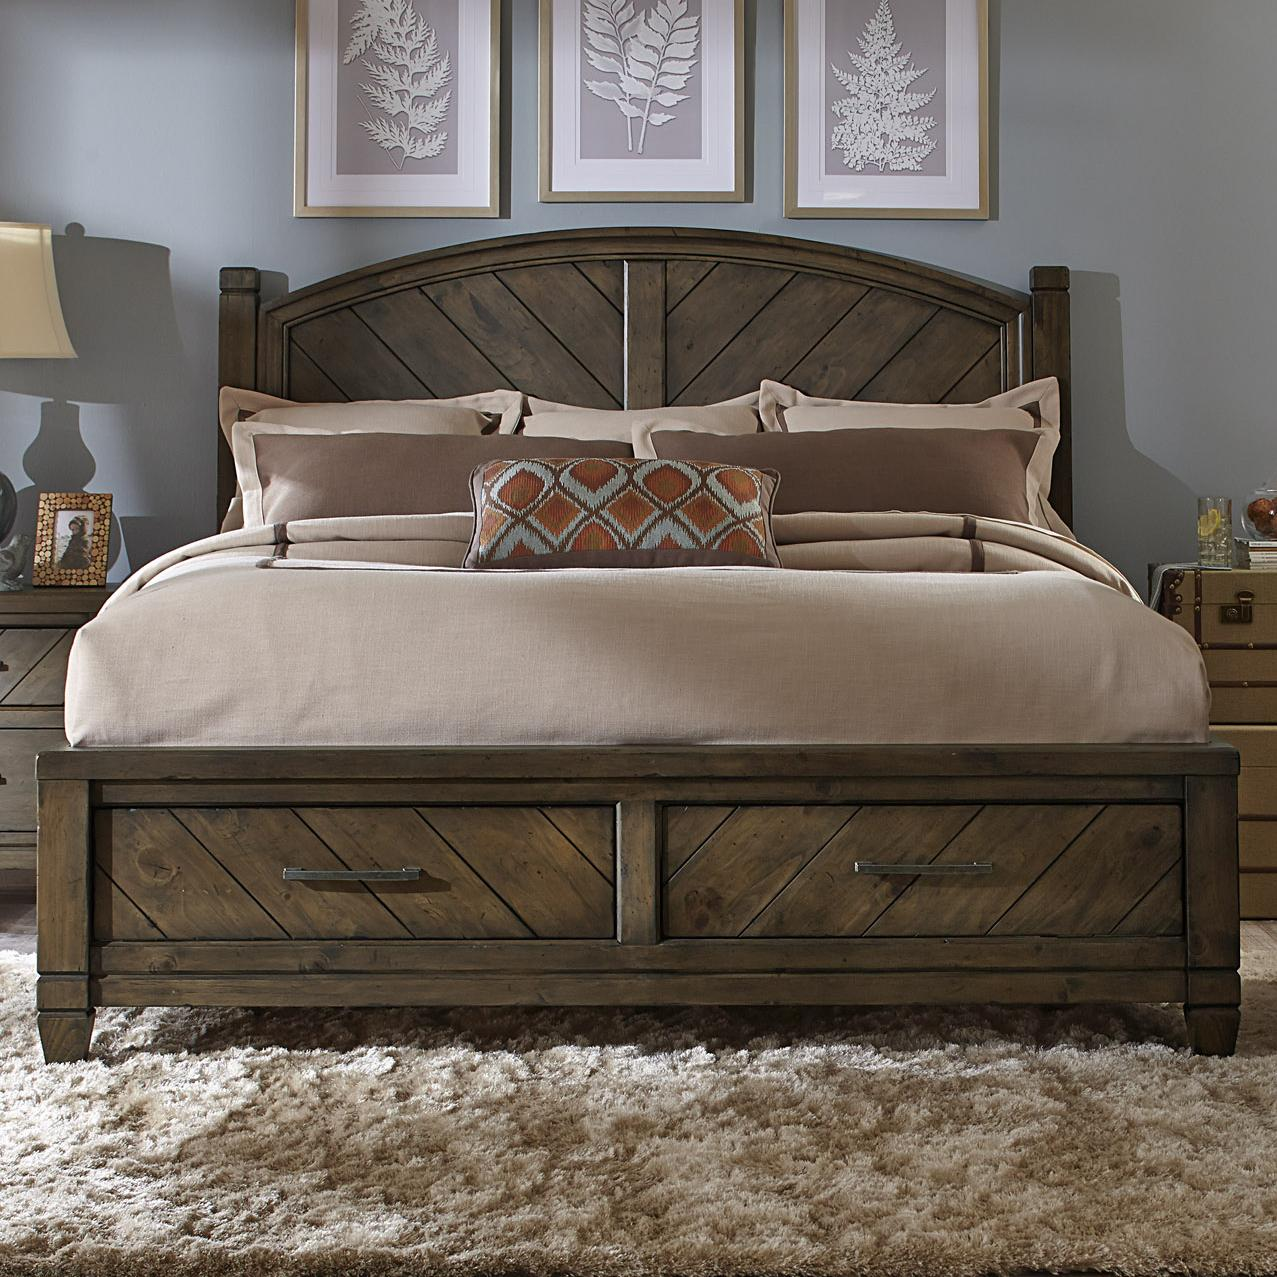 Liberty Furniture Modern Country Queen Storage Bed - Item Number: 833-BR-QSB